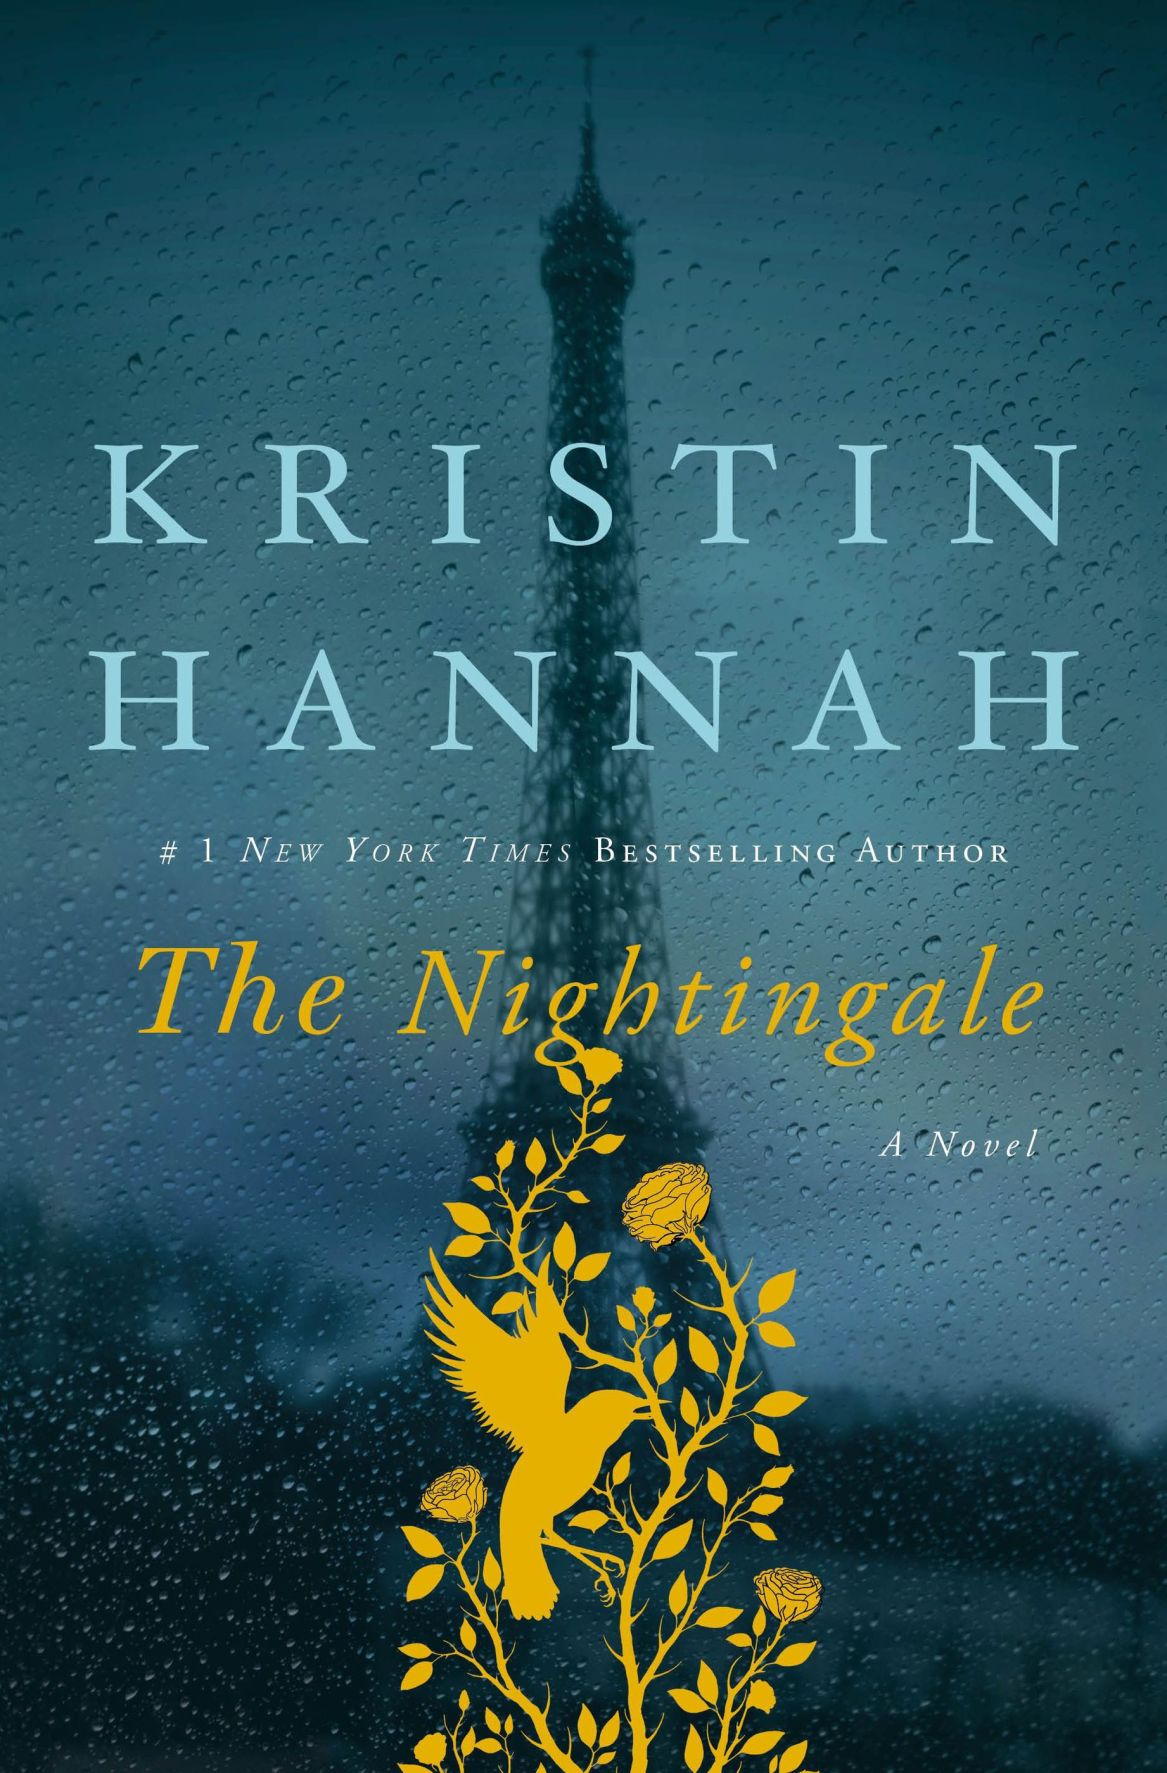 Kristin Hannah says new novel 'The Nightingale' is her favorite